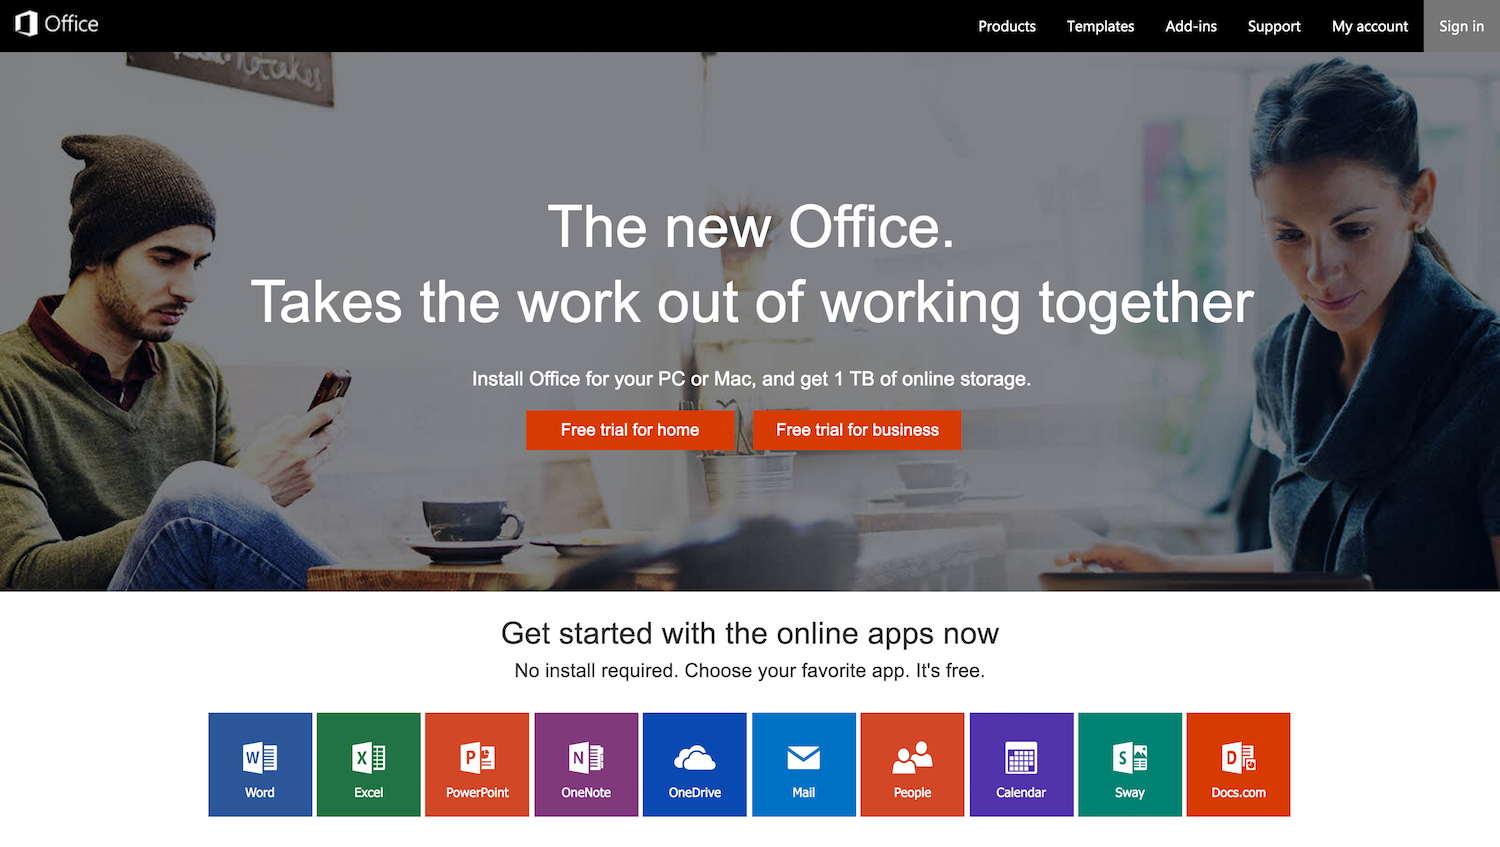 Office 365 Review (Pricing, Features & Alternatives) - Zapier